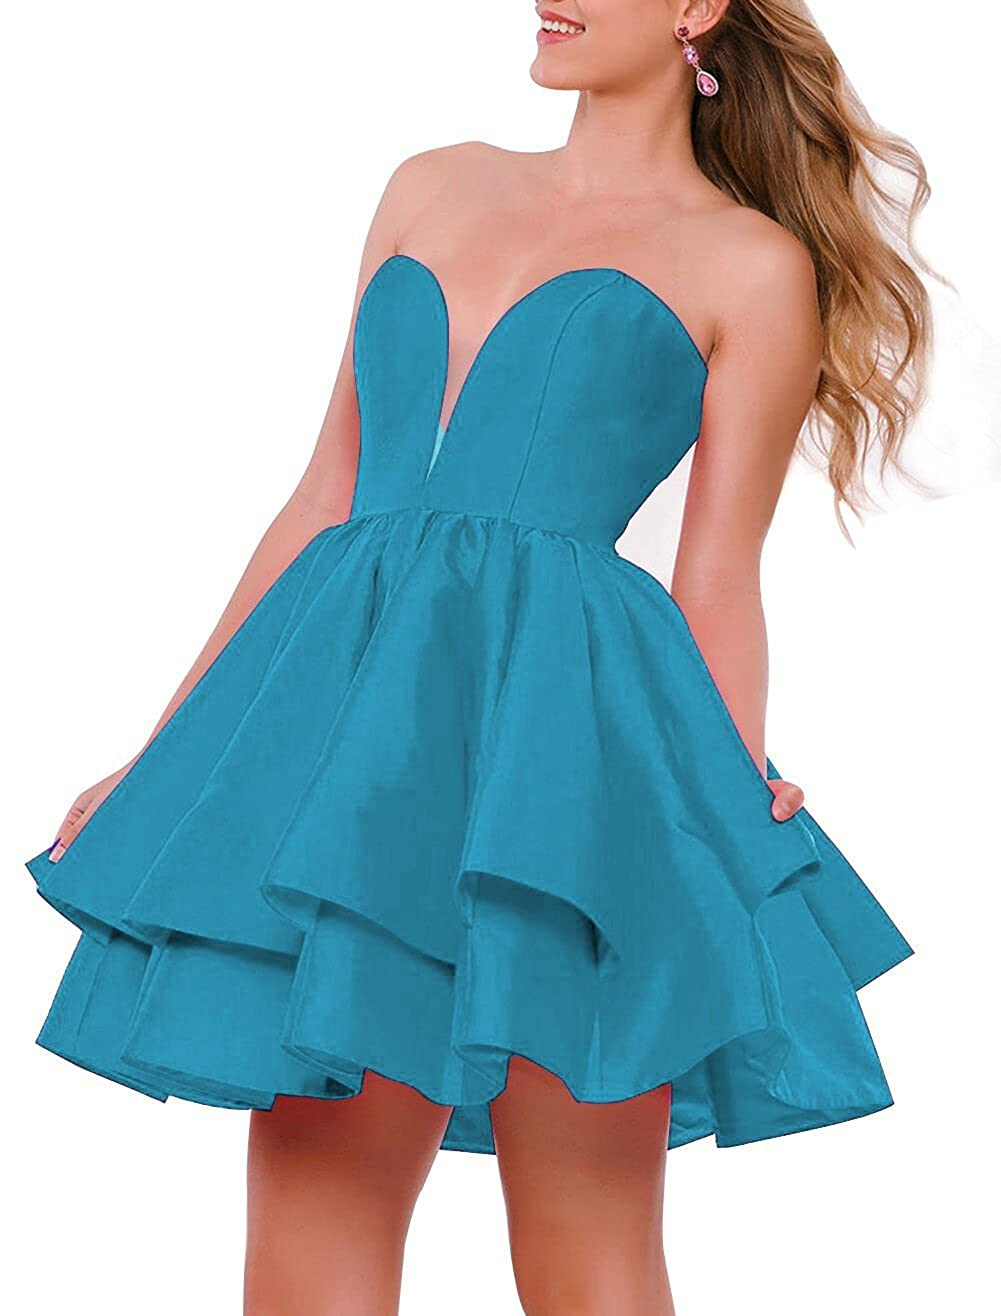 bluee JQLD Women Strapless Short Homecoming Dresses Ruffles Satin Prom Gown Formal with Pocket